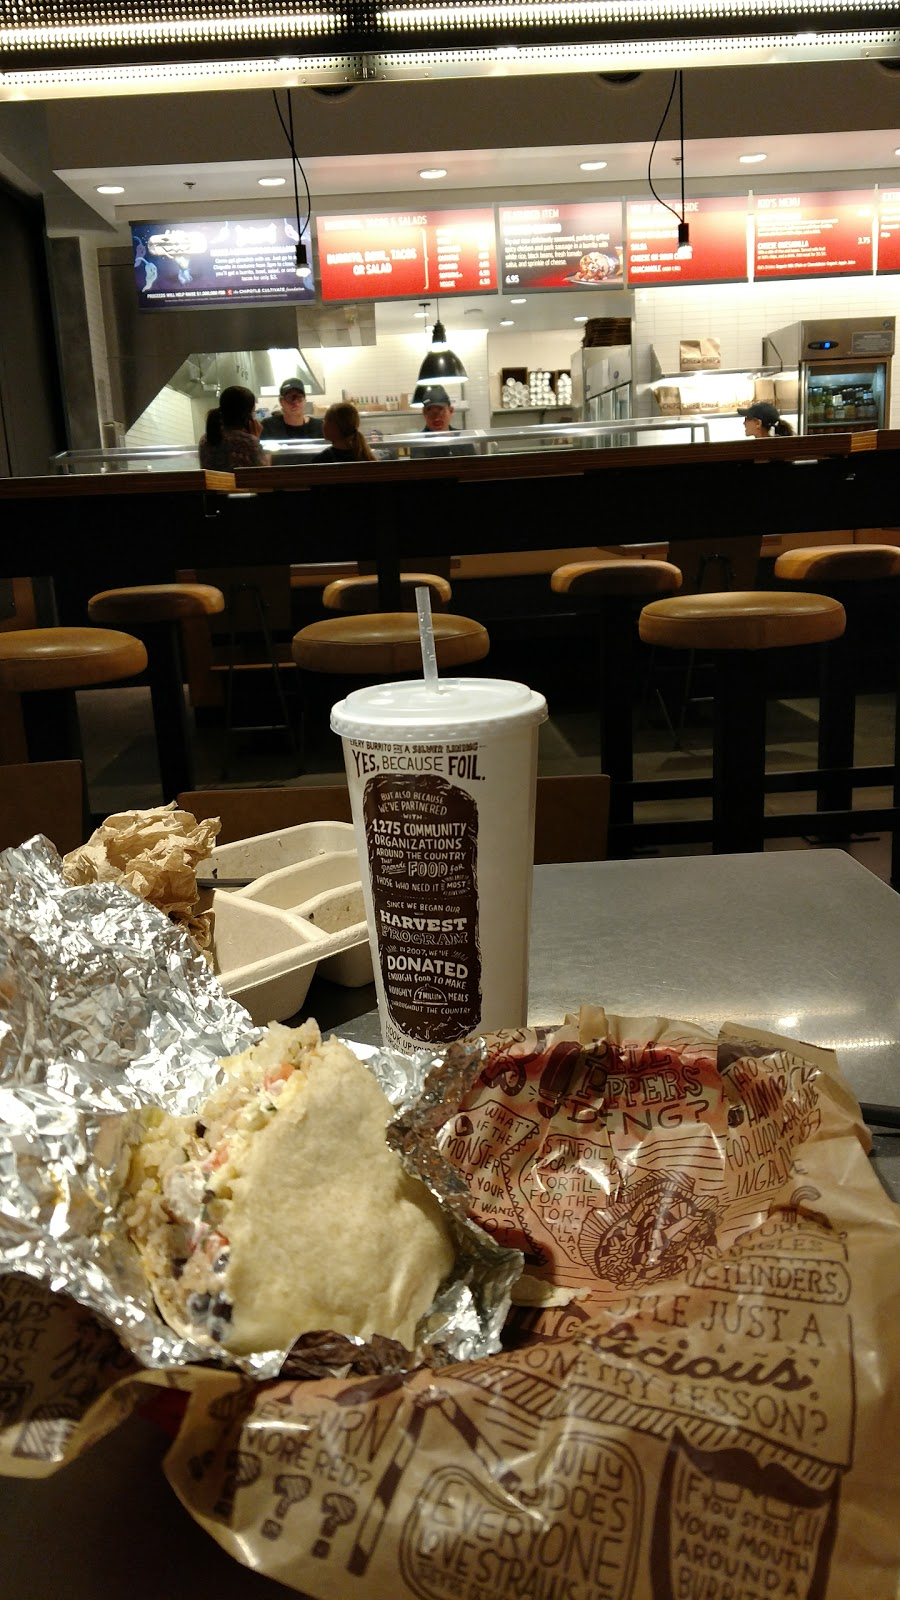 chipotle grill ececutive summary A top chipotle mexican grill inc marketing executive might have been driven to drugs as the fast-food chain's brand was tarnished by health scares at the burrito restaurants.